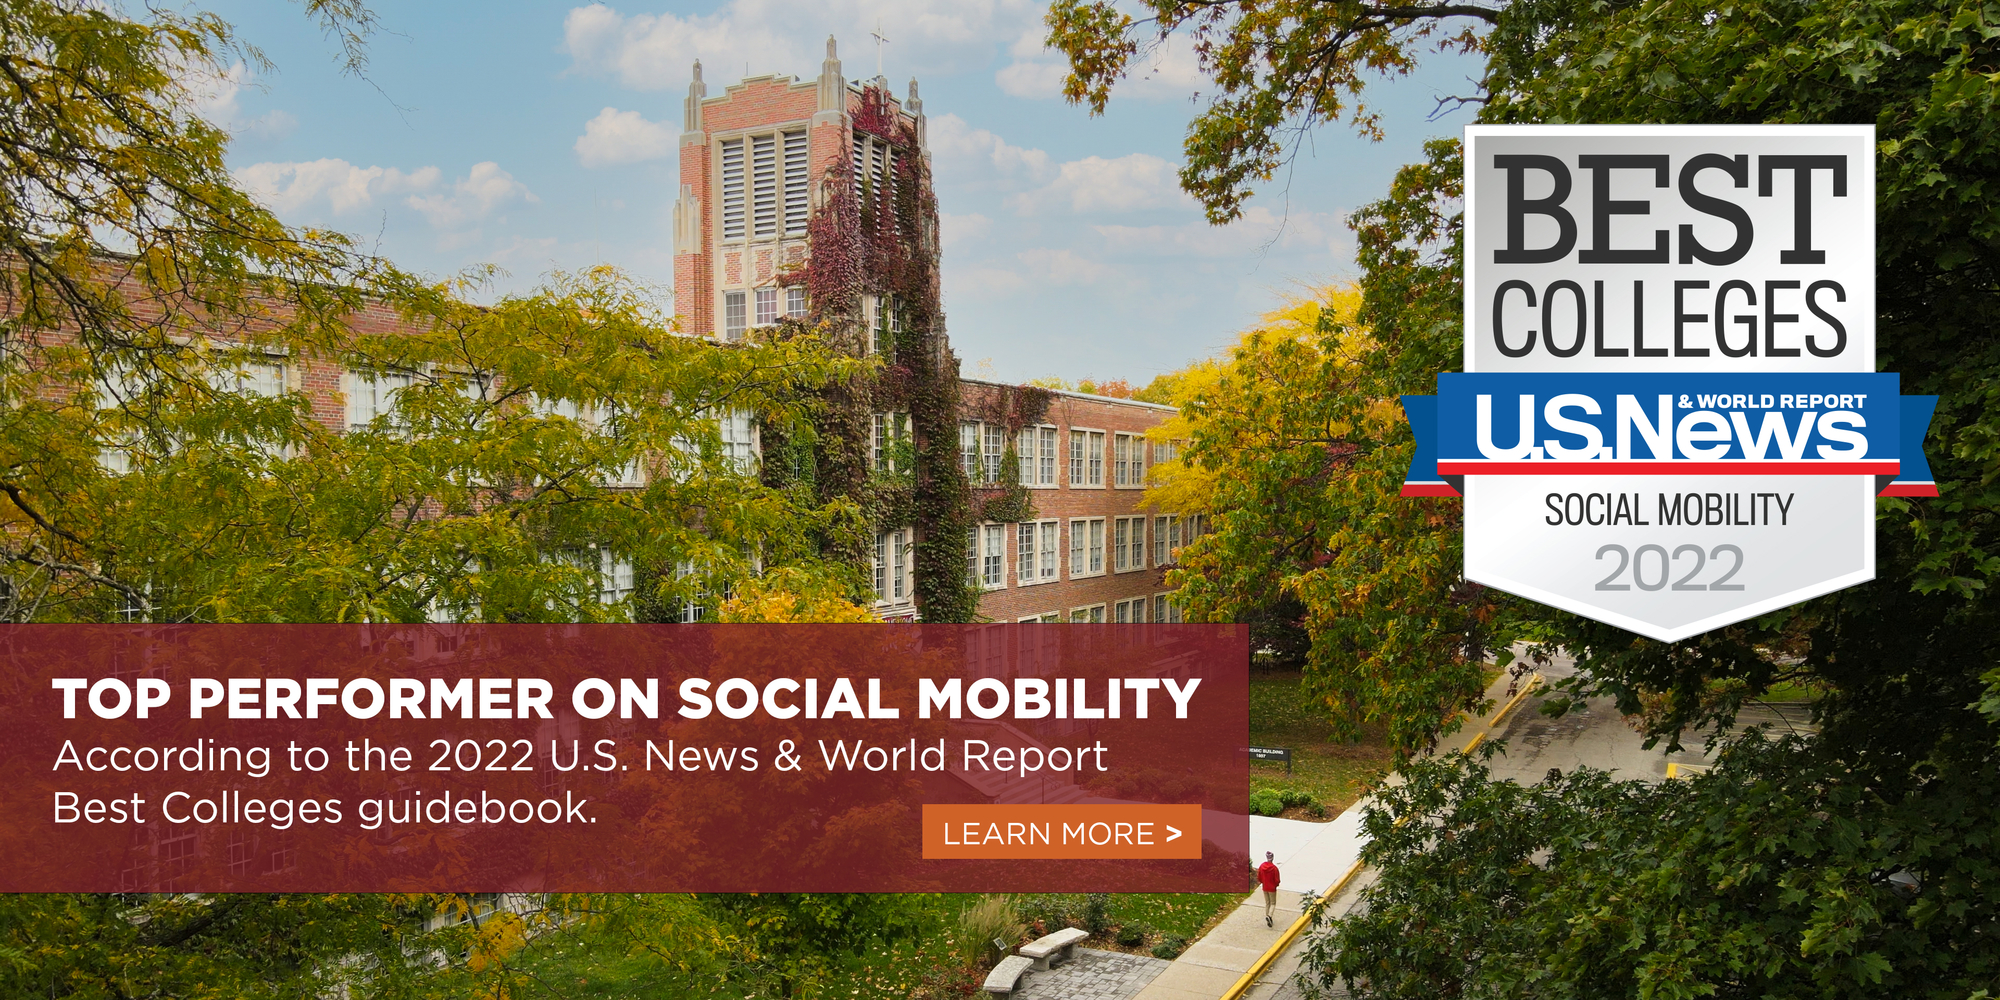 Top Performer on Social Mobility according to 2022 U.S. News & World Report Best Colleges guidebook